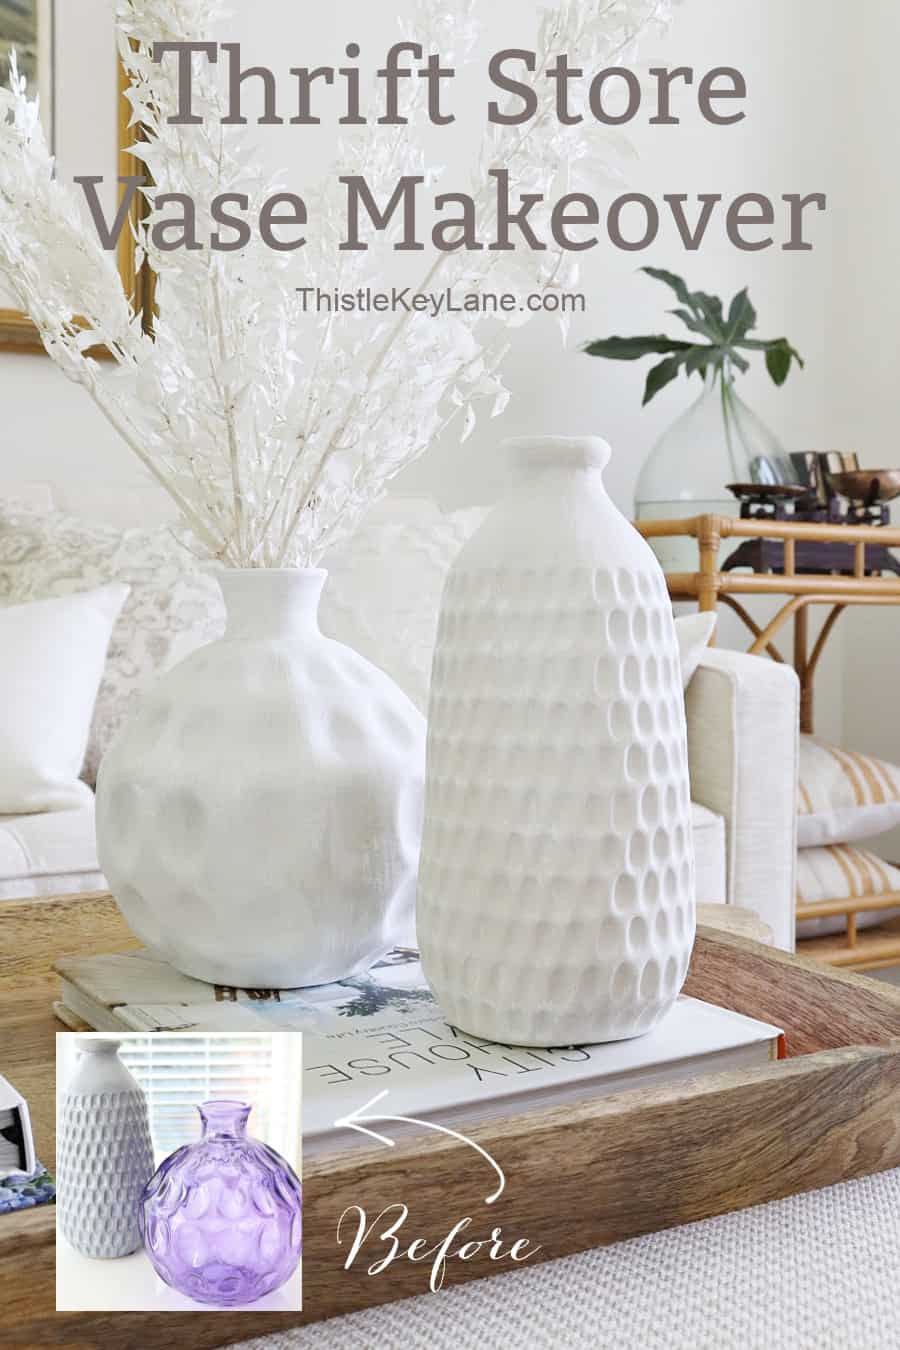 Easy Thrift Store Vase Makeover With Paint.